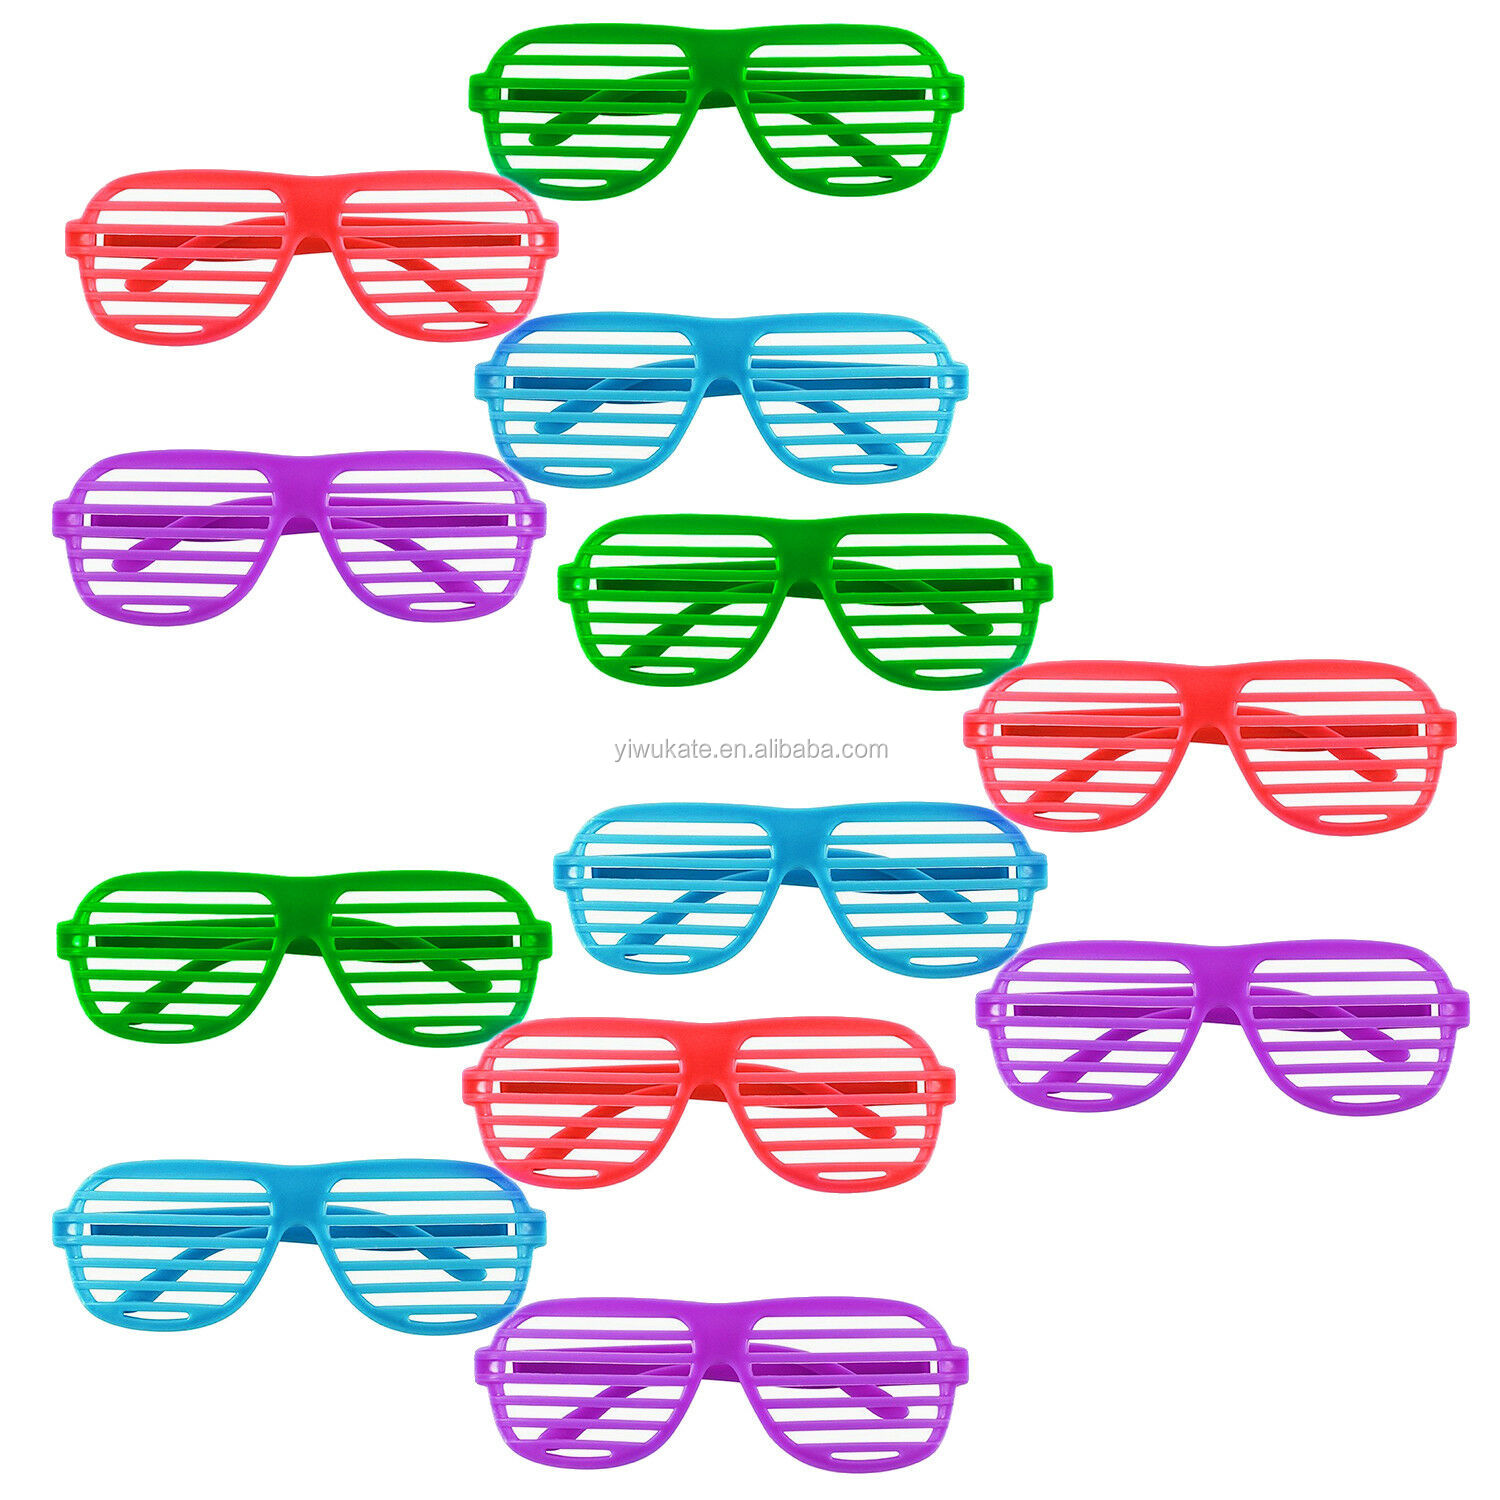 Hot-selling 12 Pack Kleurrijke Shutter Shades Bril Party Fancy Dress Heldere Zonnebril KR317